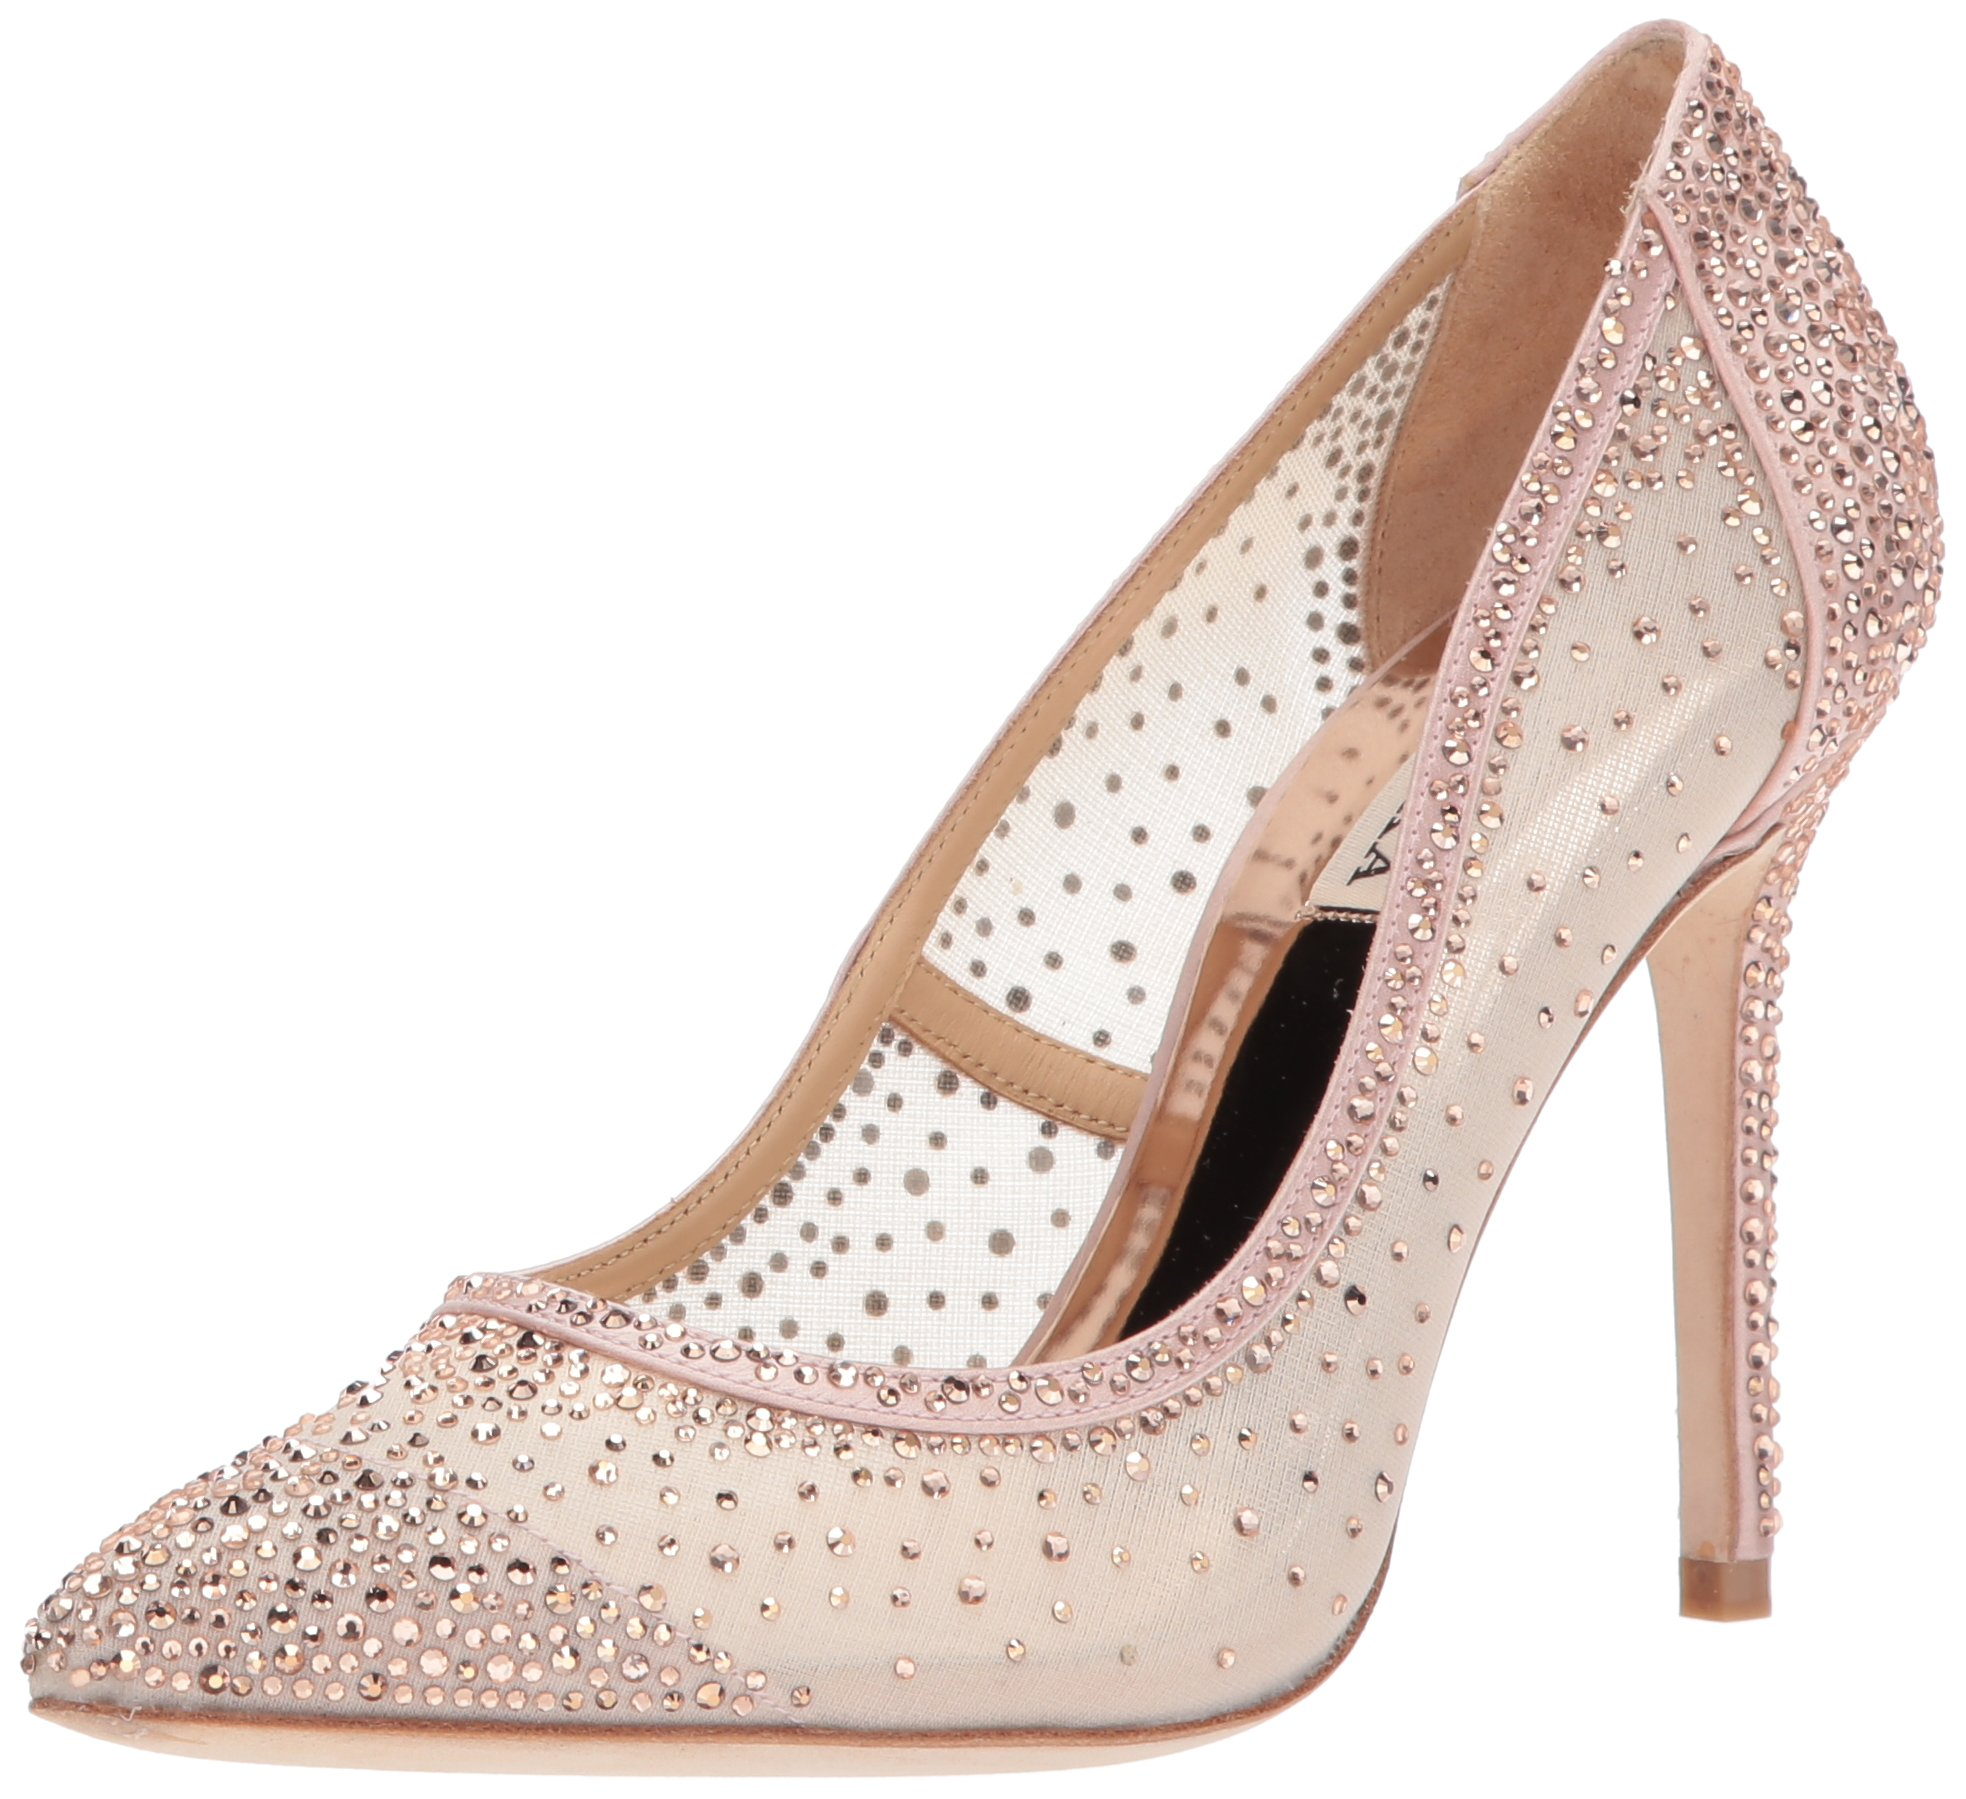 Badgley Mischka Women's Weslee Pump, Blush, 7 M US